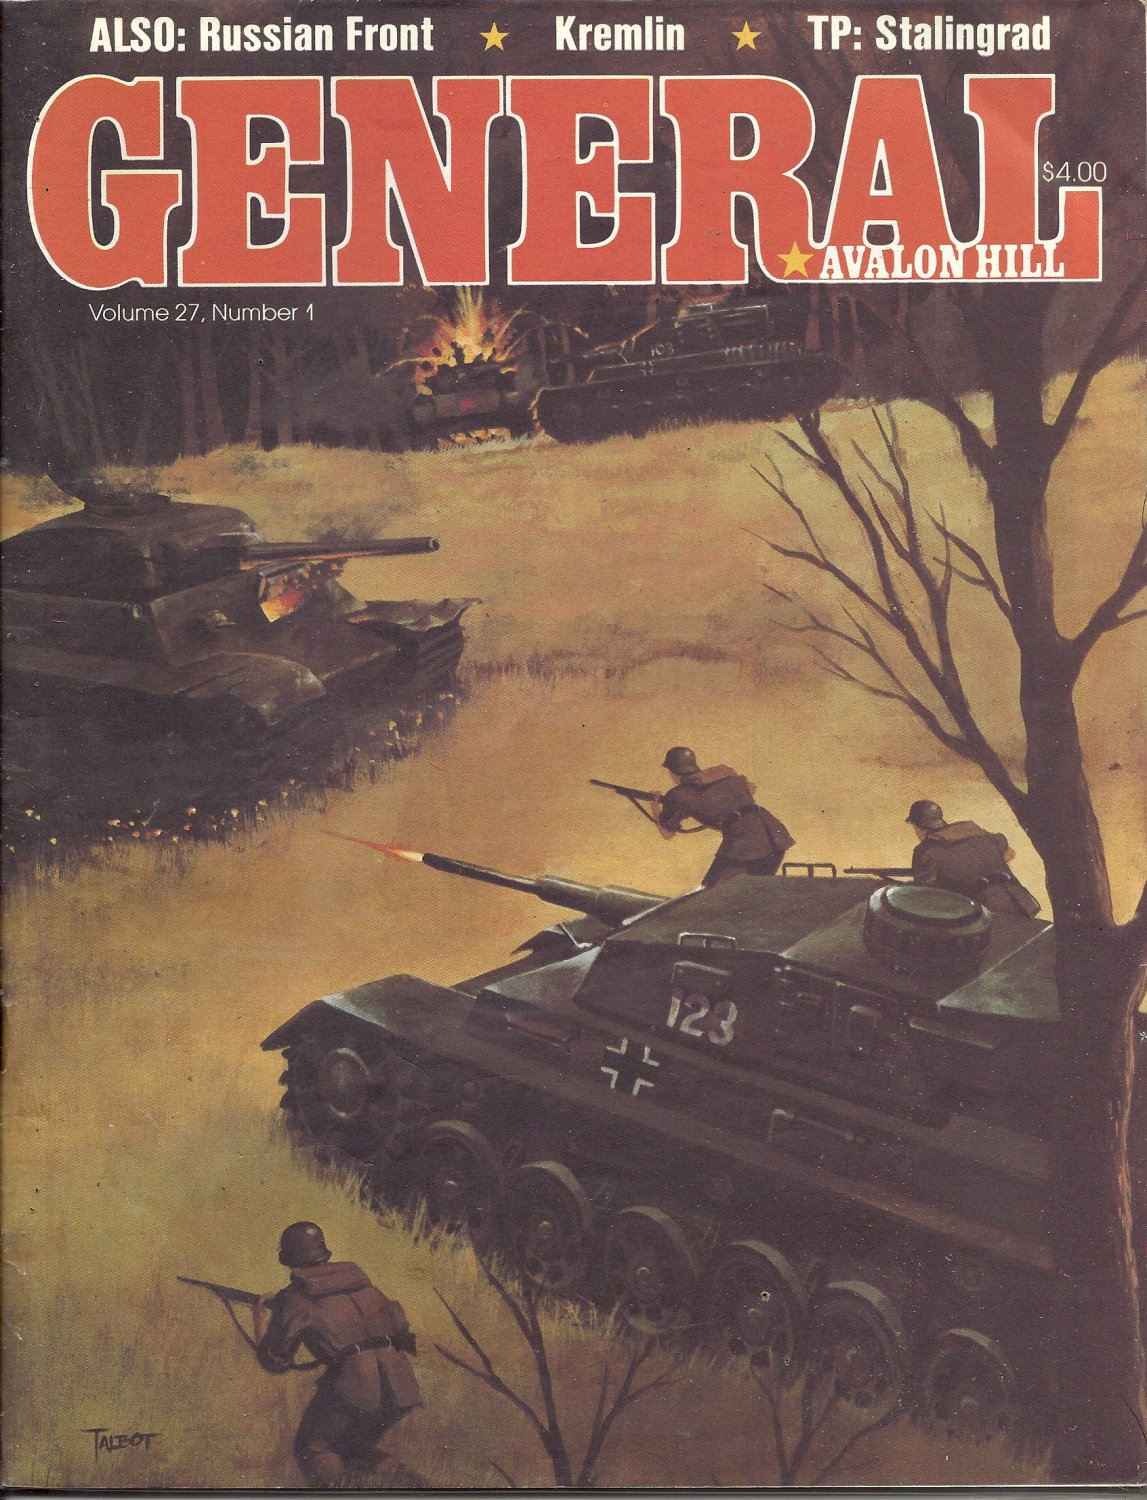 1991 Vintage Game Magazine: Avalon HIll- General Vol. 27 #1